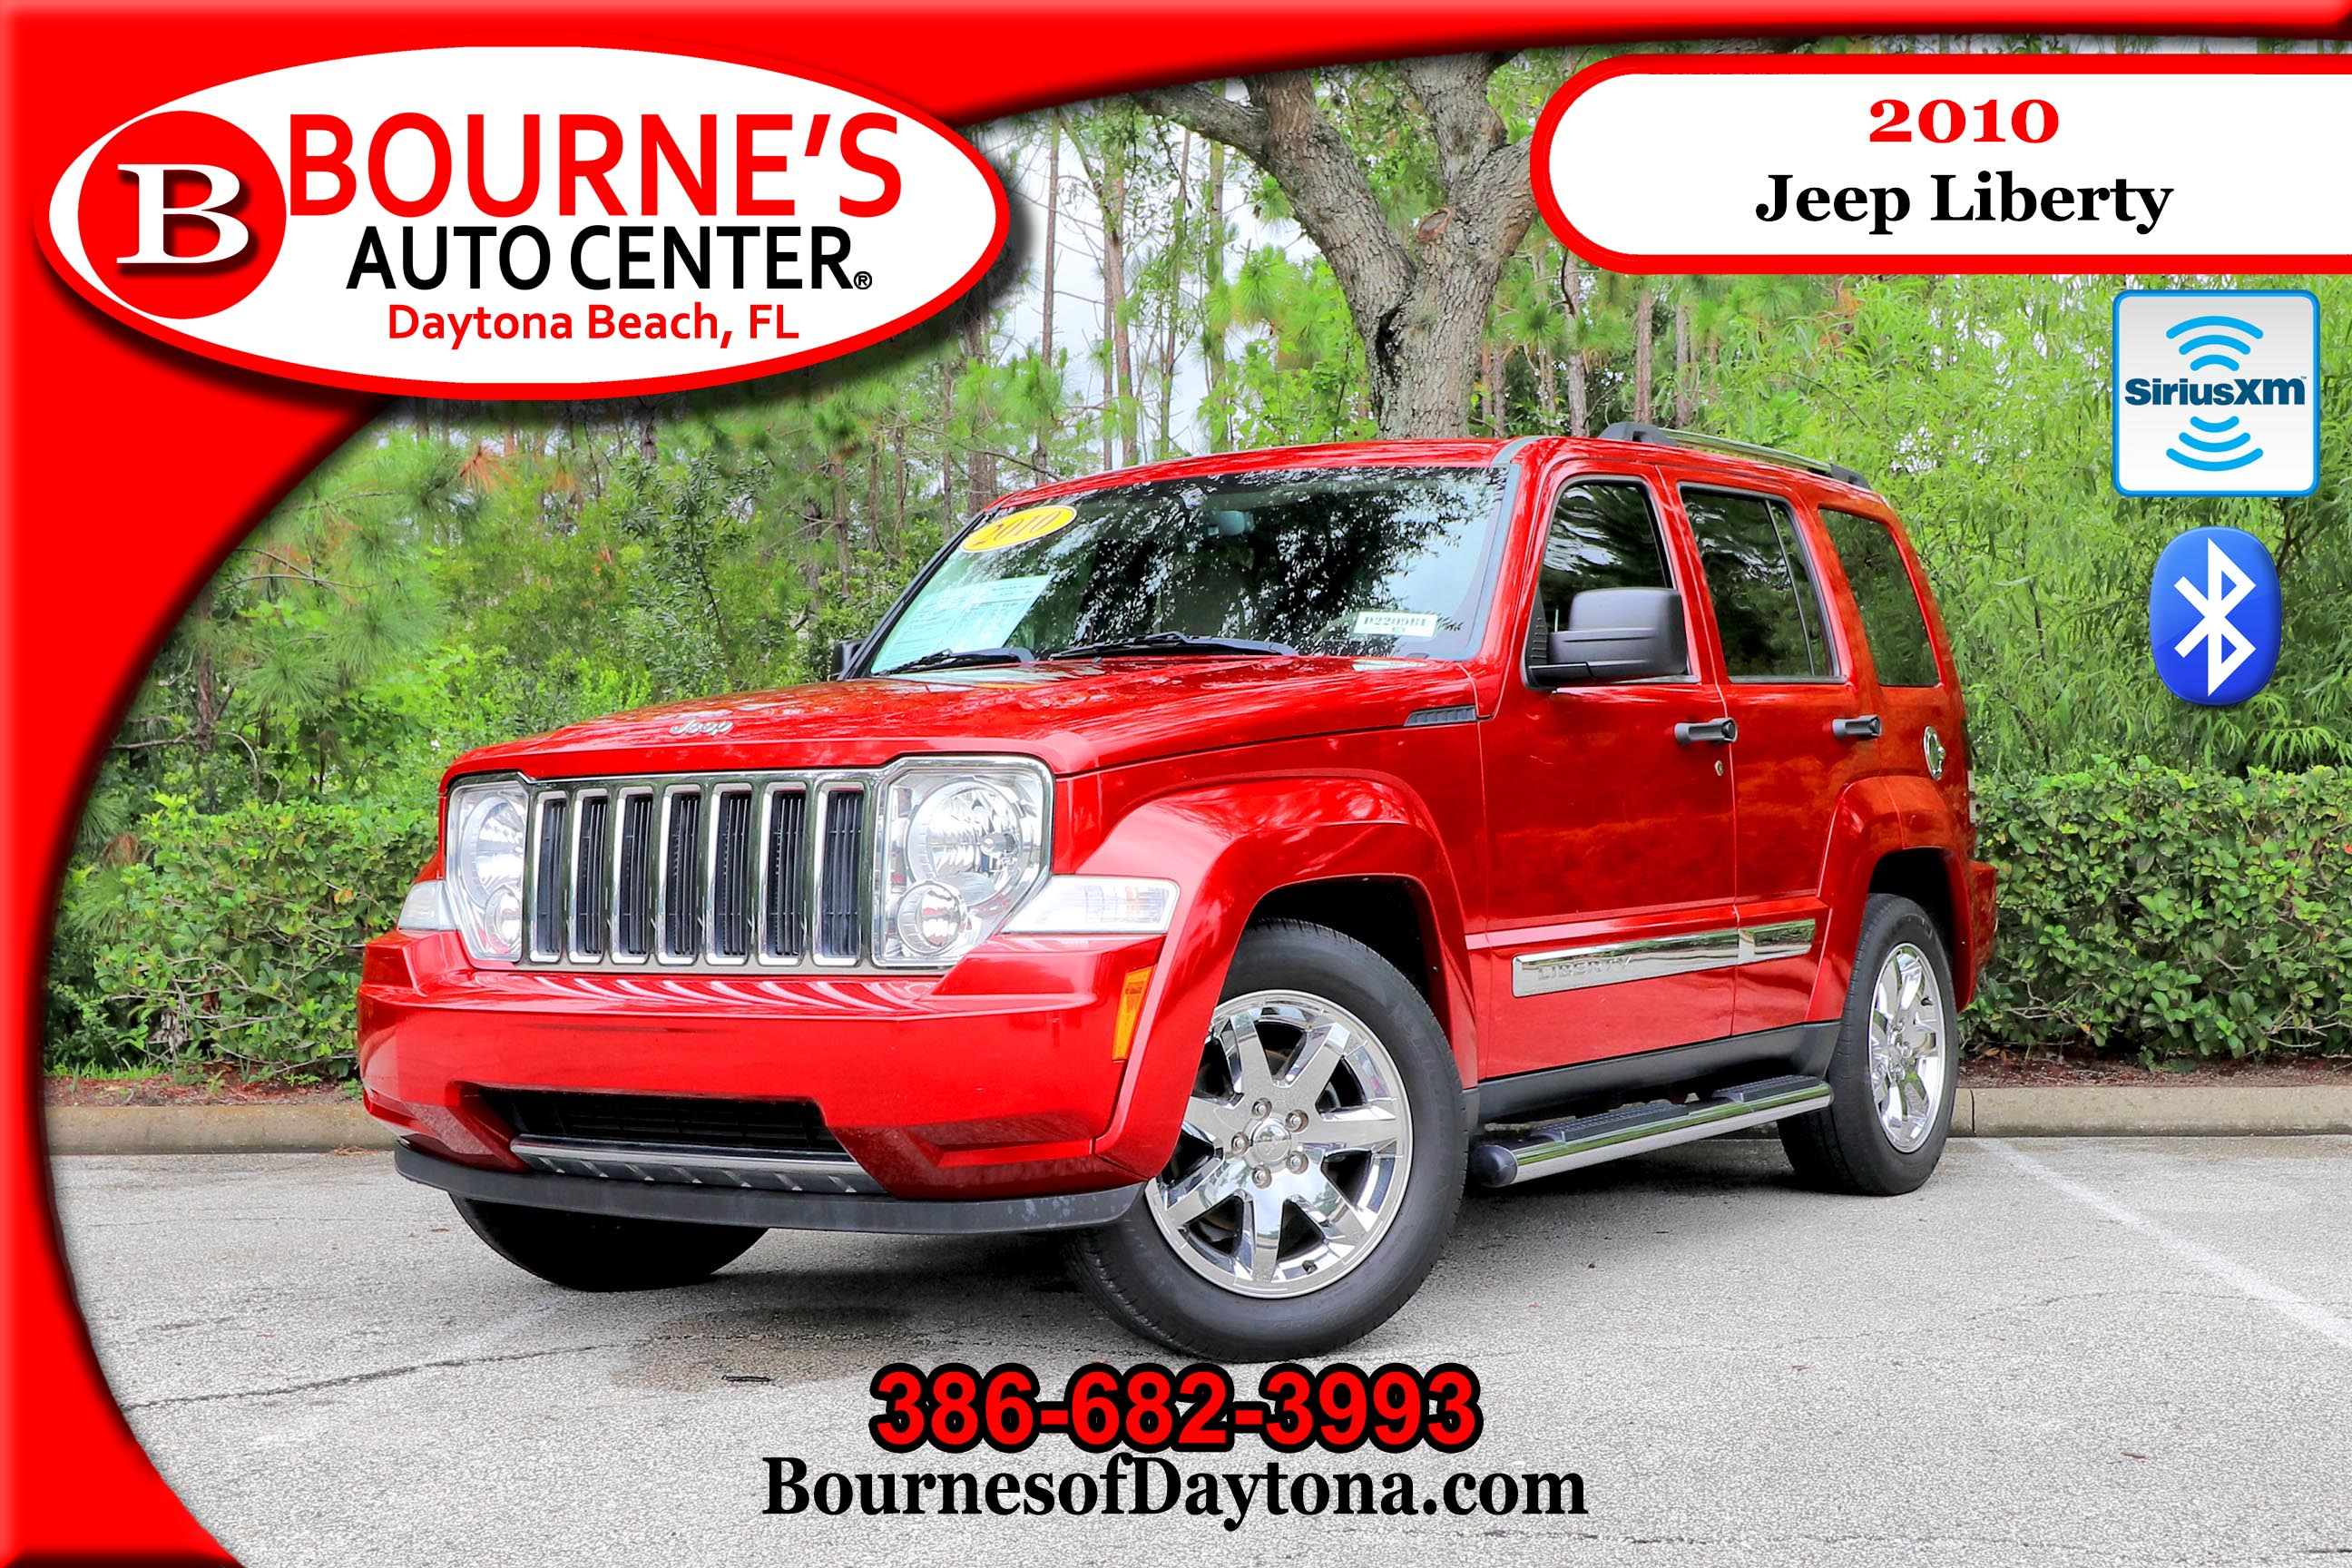 2010 Jeep Liberty Limited XM Radio/ Bluetooth/ Leather SUV